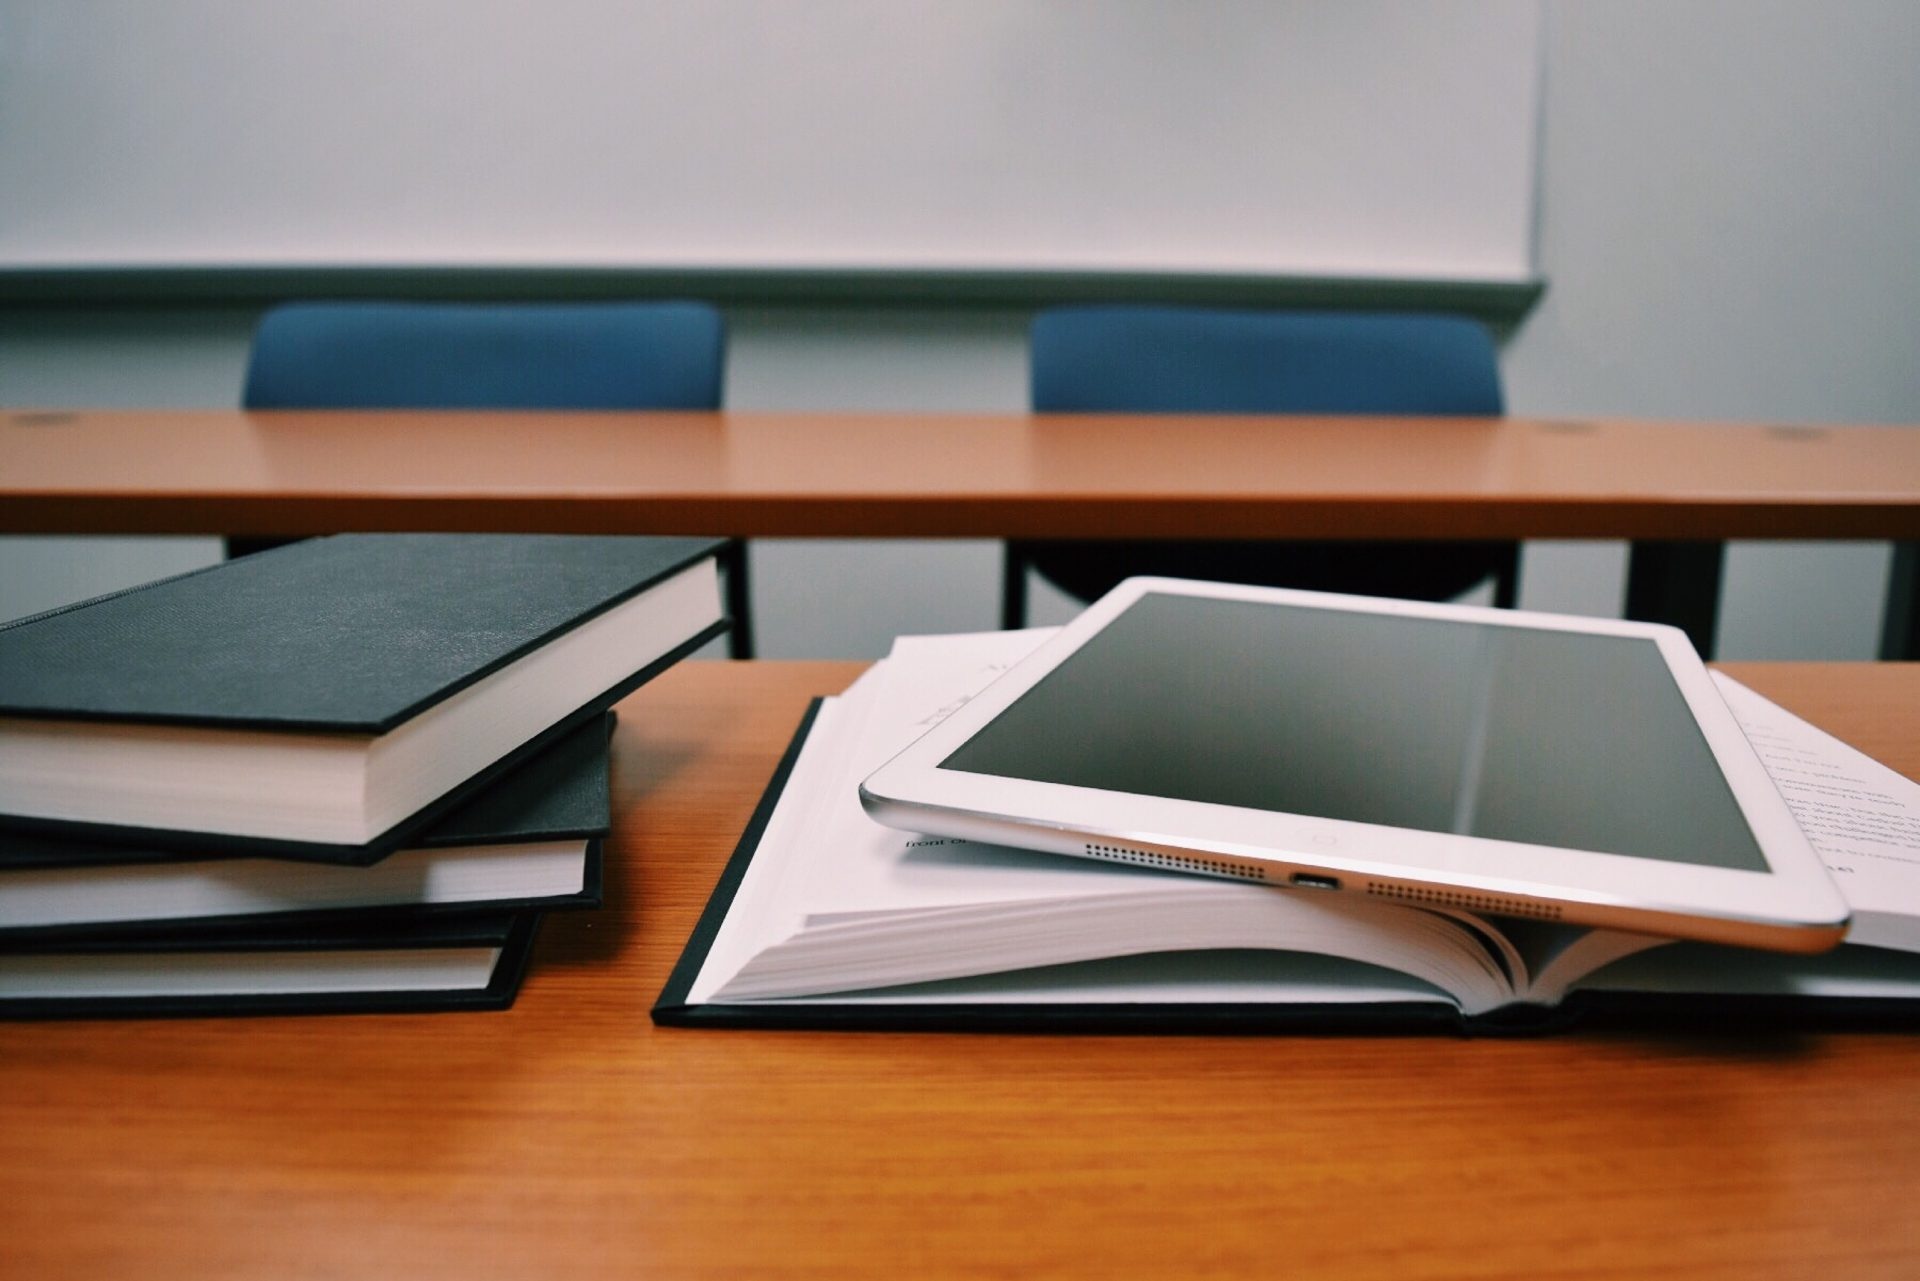 An ipad on a desk with books in a classroom.